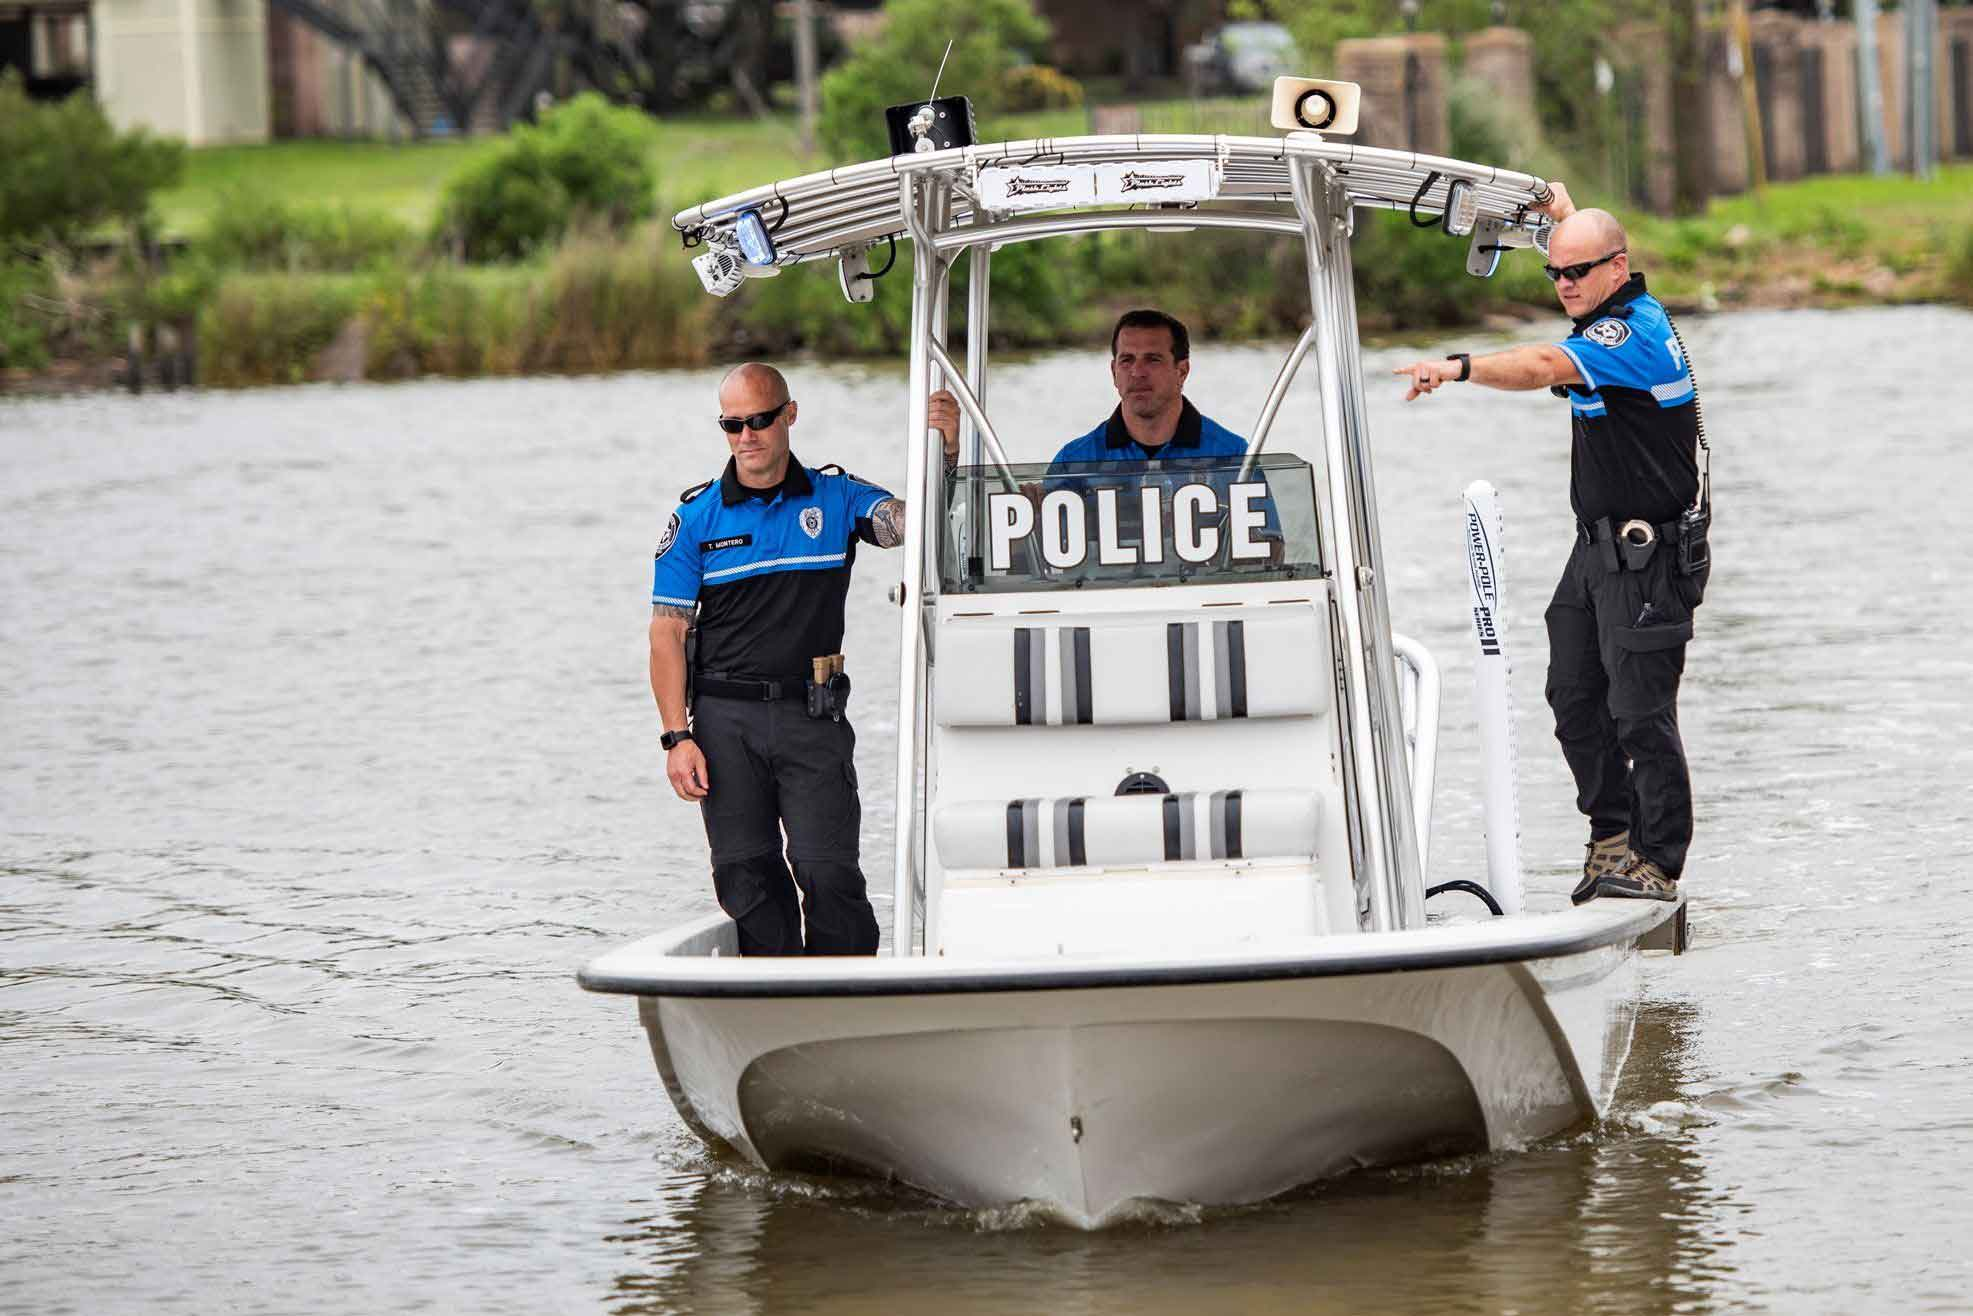 Three police officers on a boat